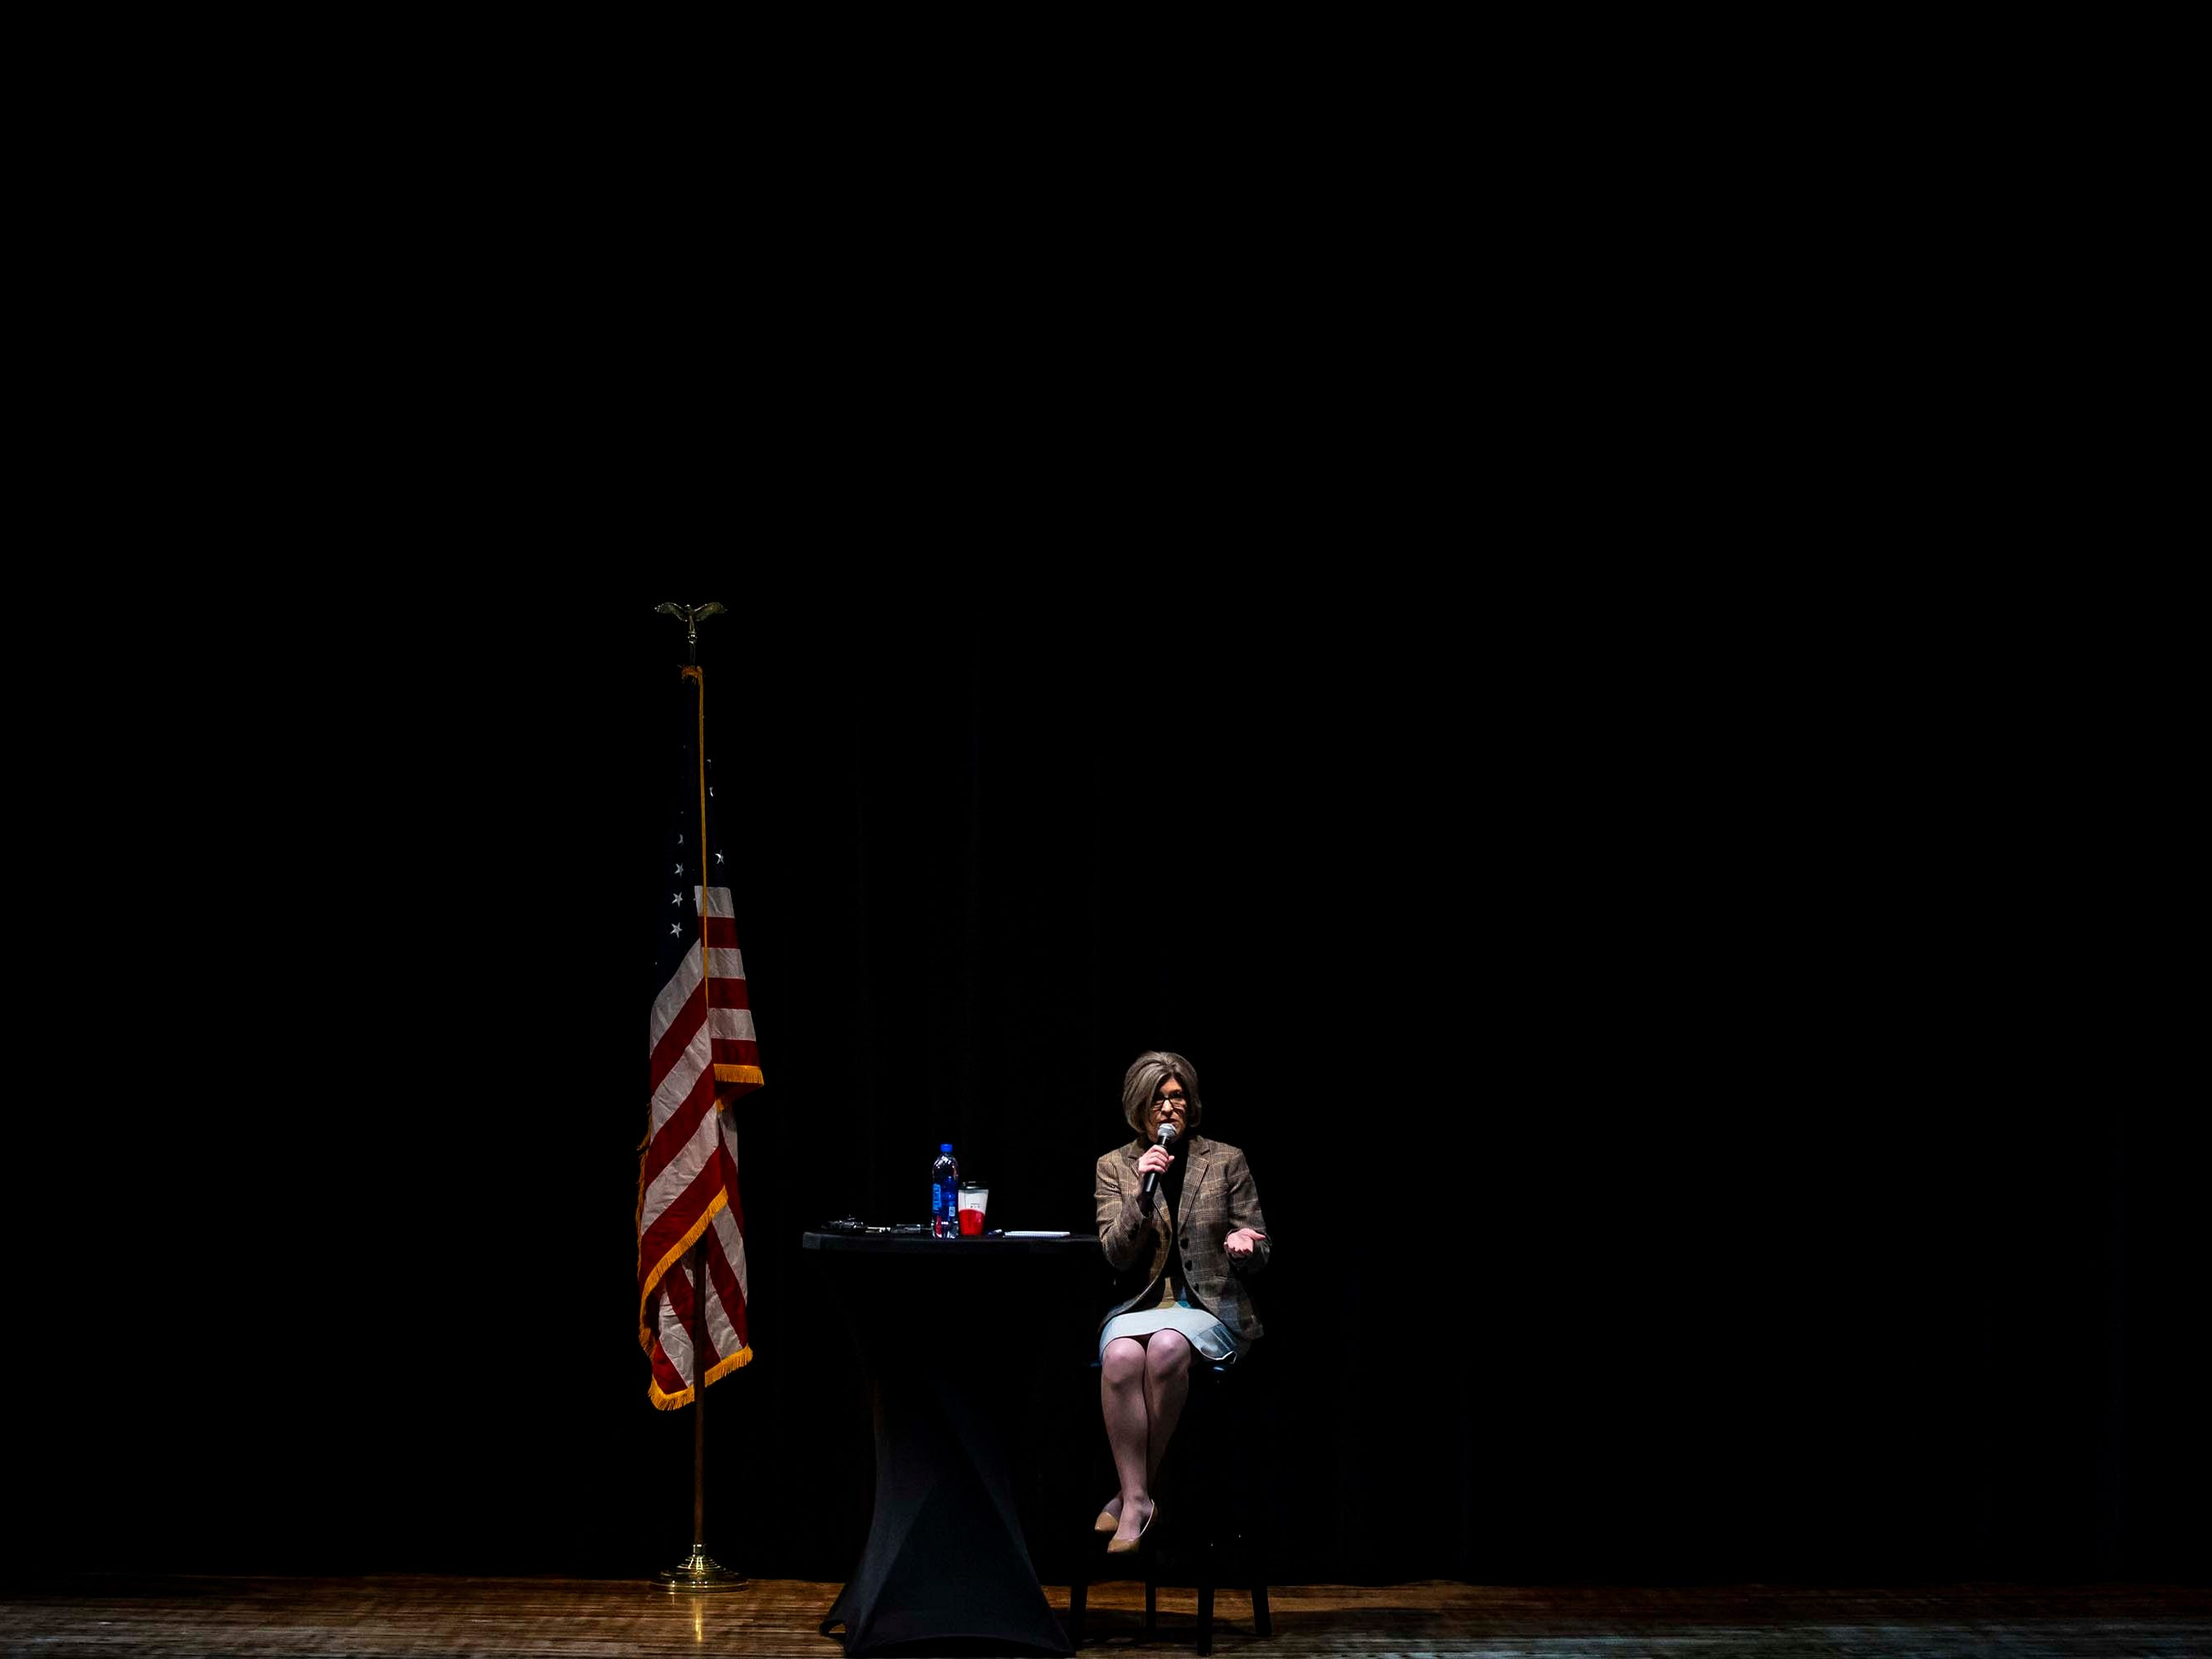 U.S. Sen. Joni Ernst, R-Red Oak, takes questions from constituents, as a part of her 99 county tour, during a town hall meeting on Thursday, March 21, 2019, in the Adel DeSoto Minburn High School Auditorium in Adel.